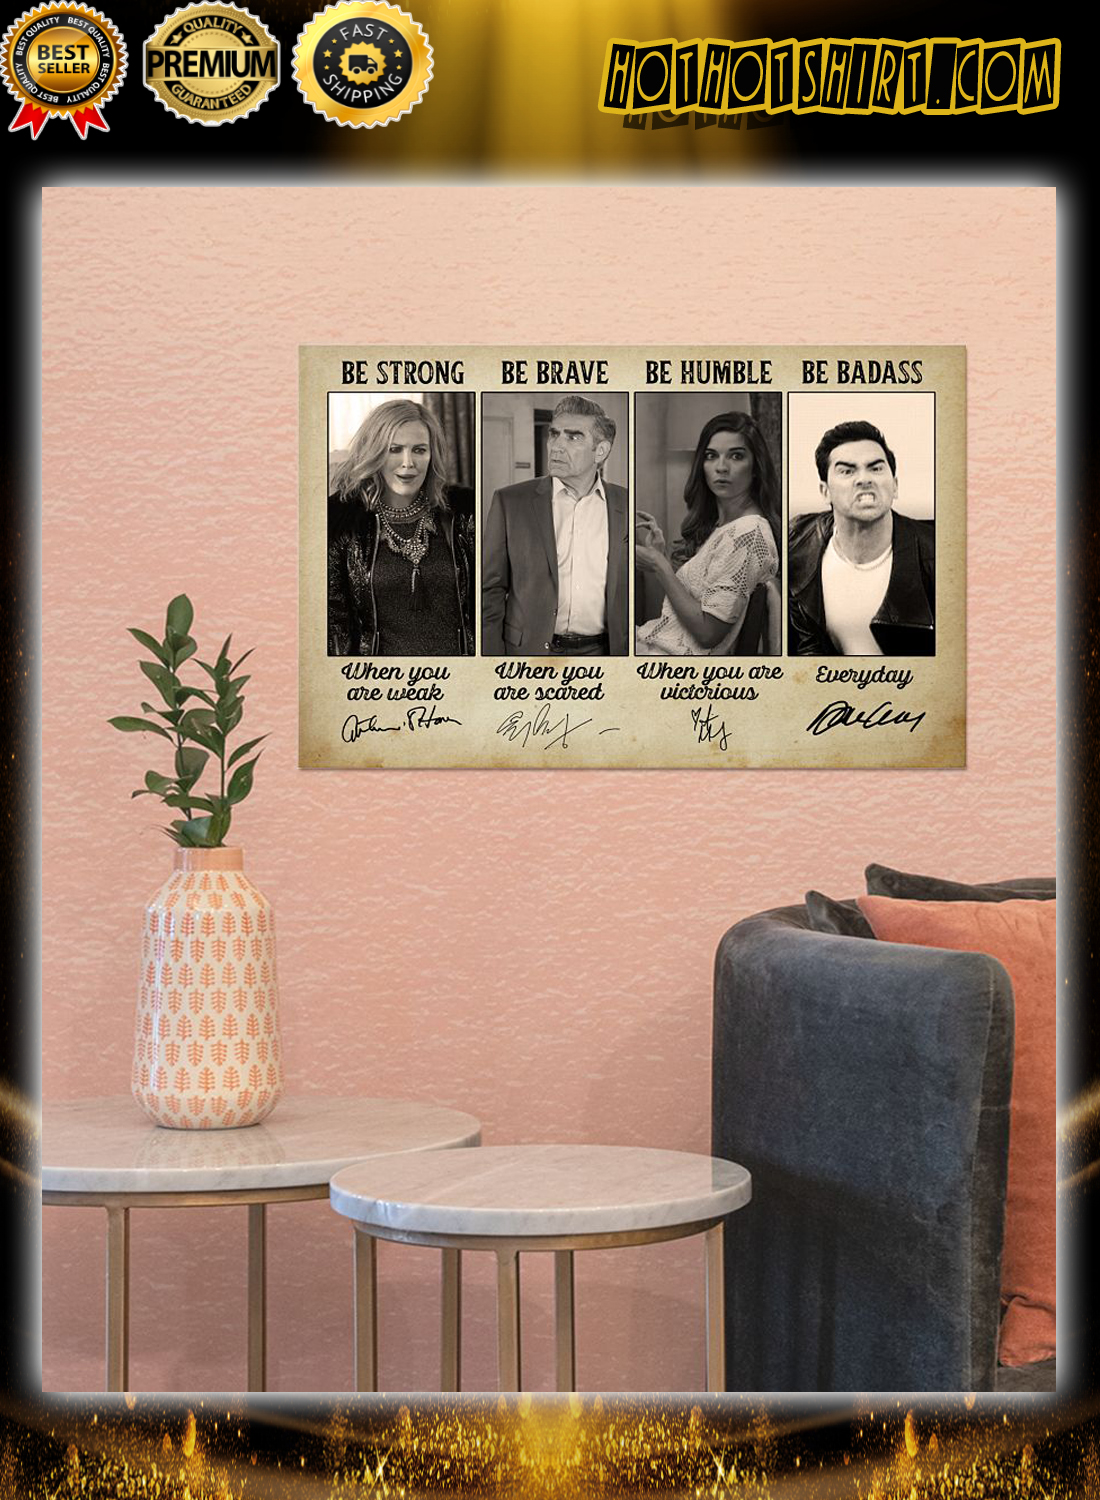 Schitt's Creek be strong be brave be humble be badass poster